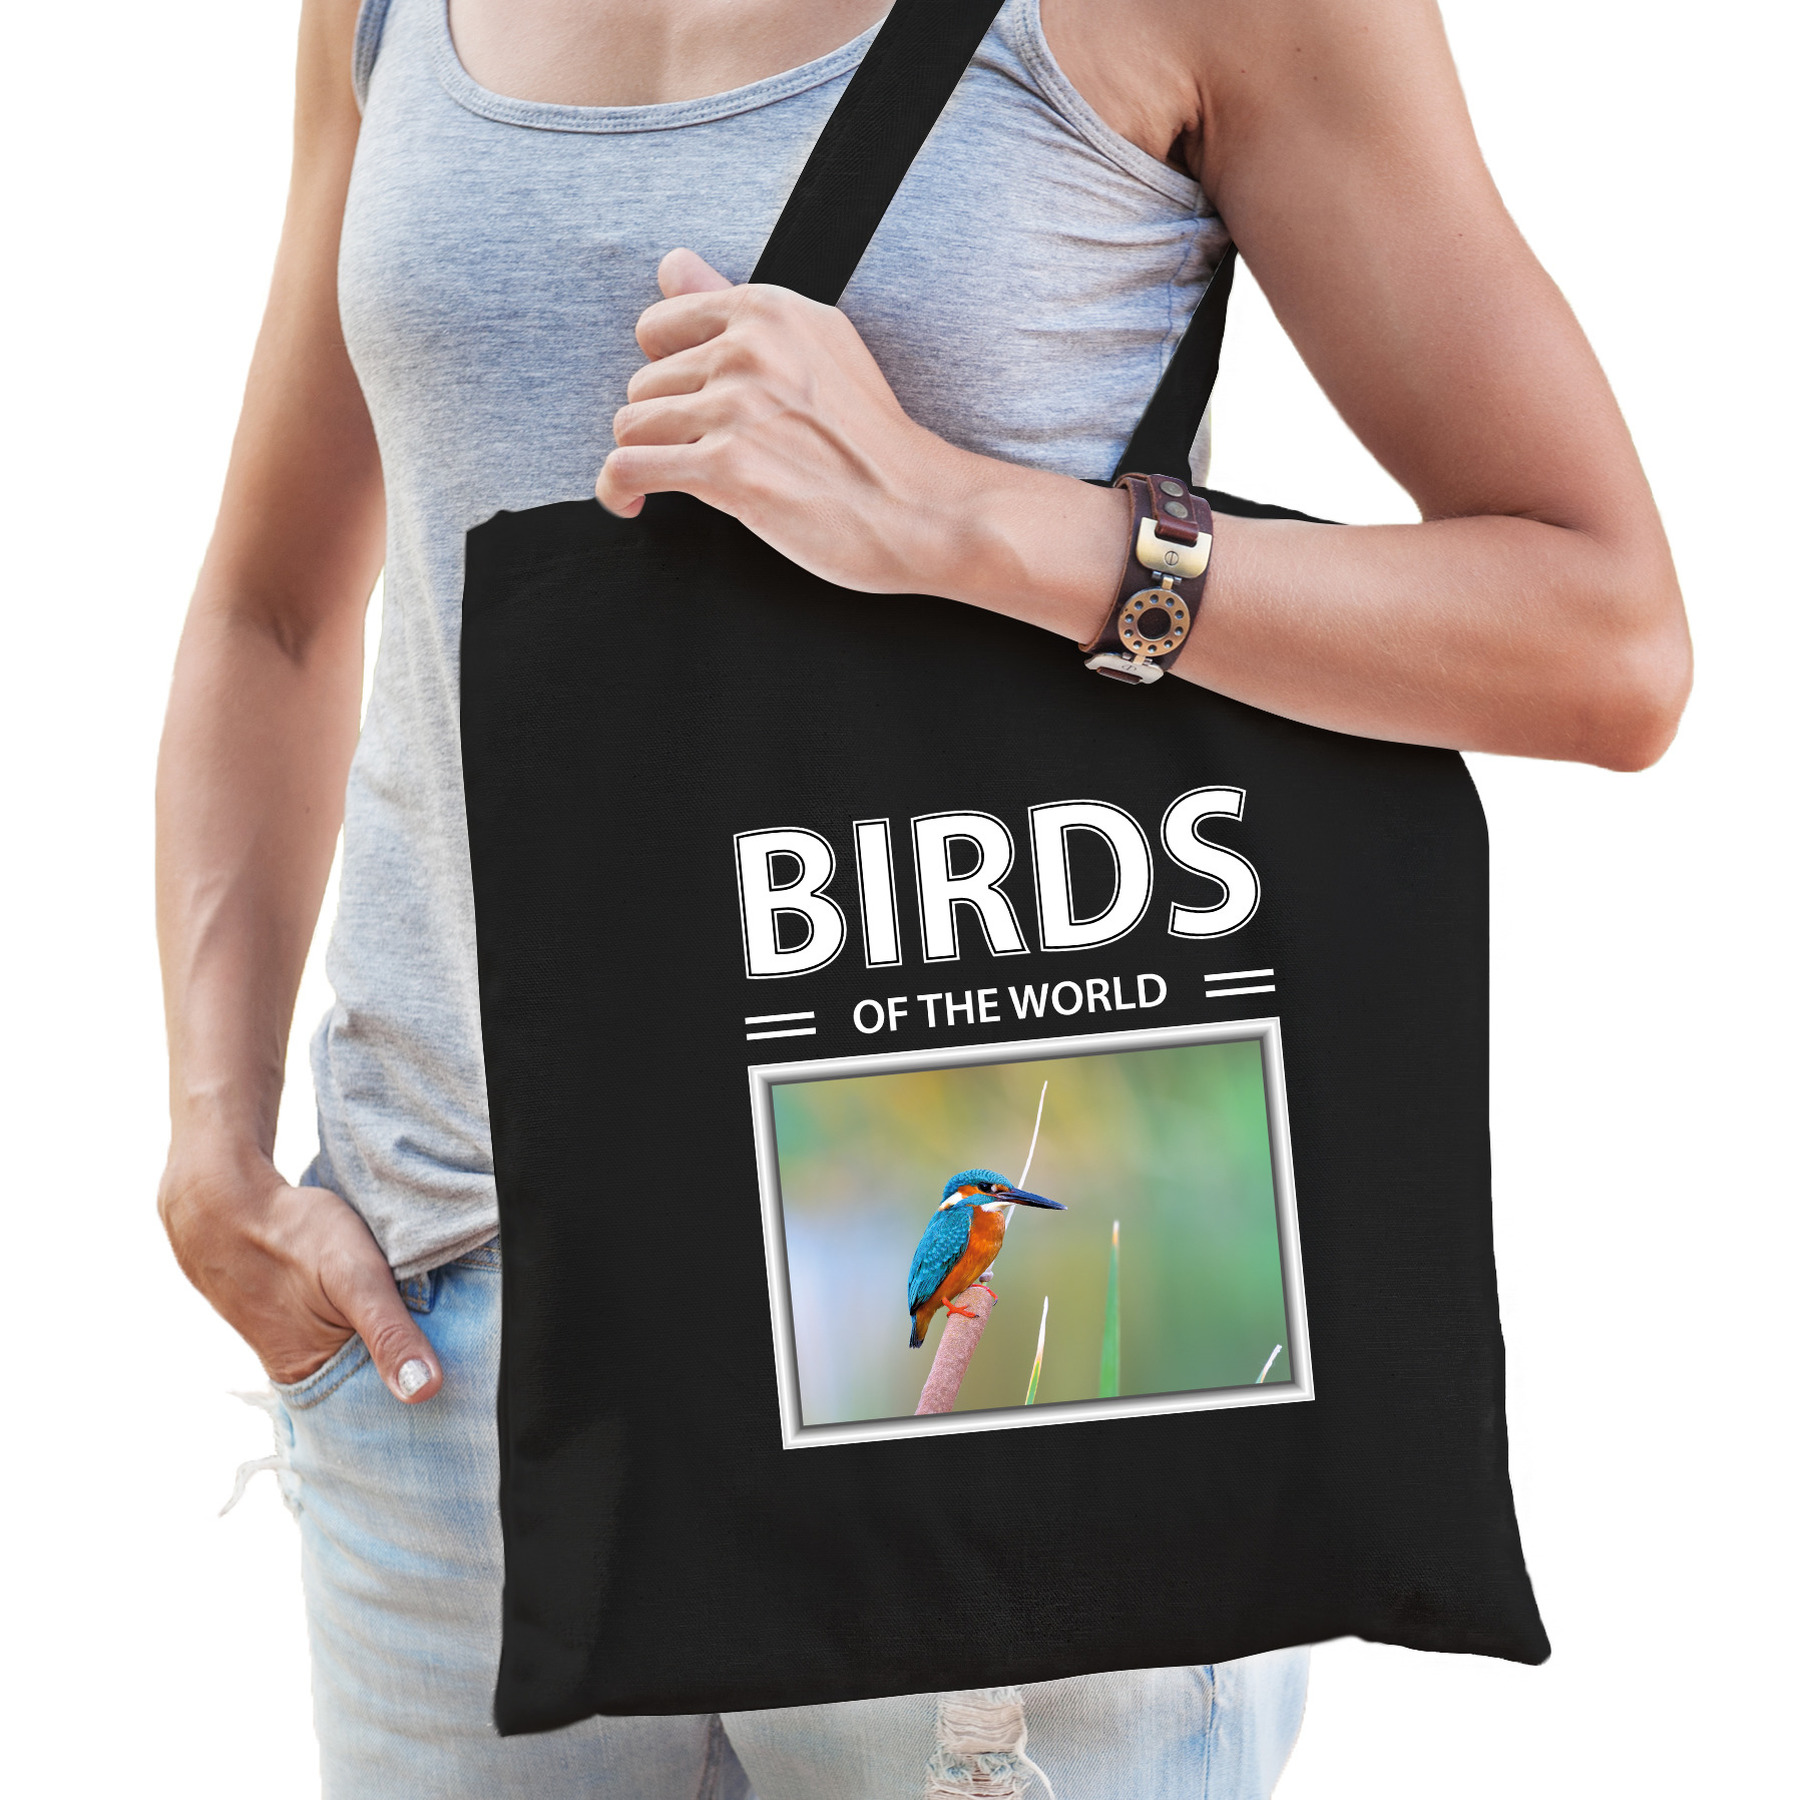 Katoenen tasje Ijsvogels zwart - birds of the world Ijsvogel cadeau tas